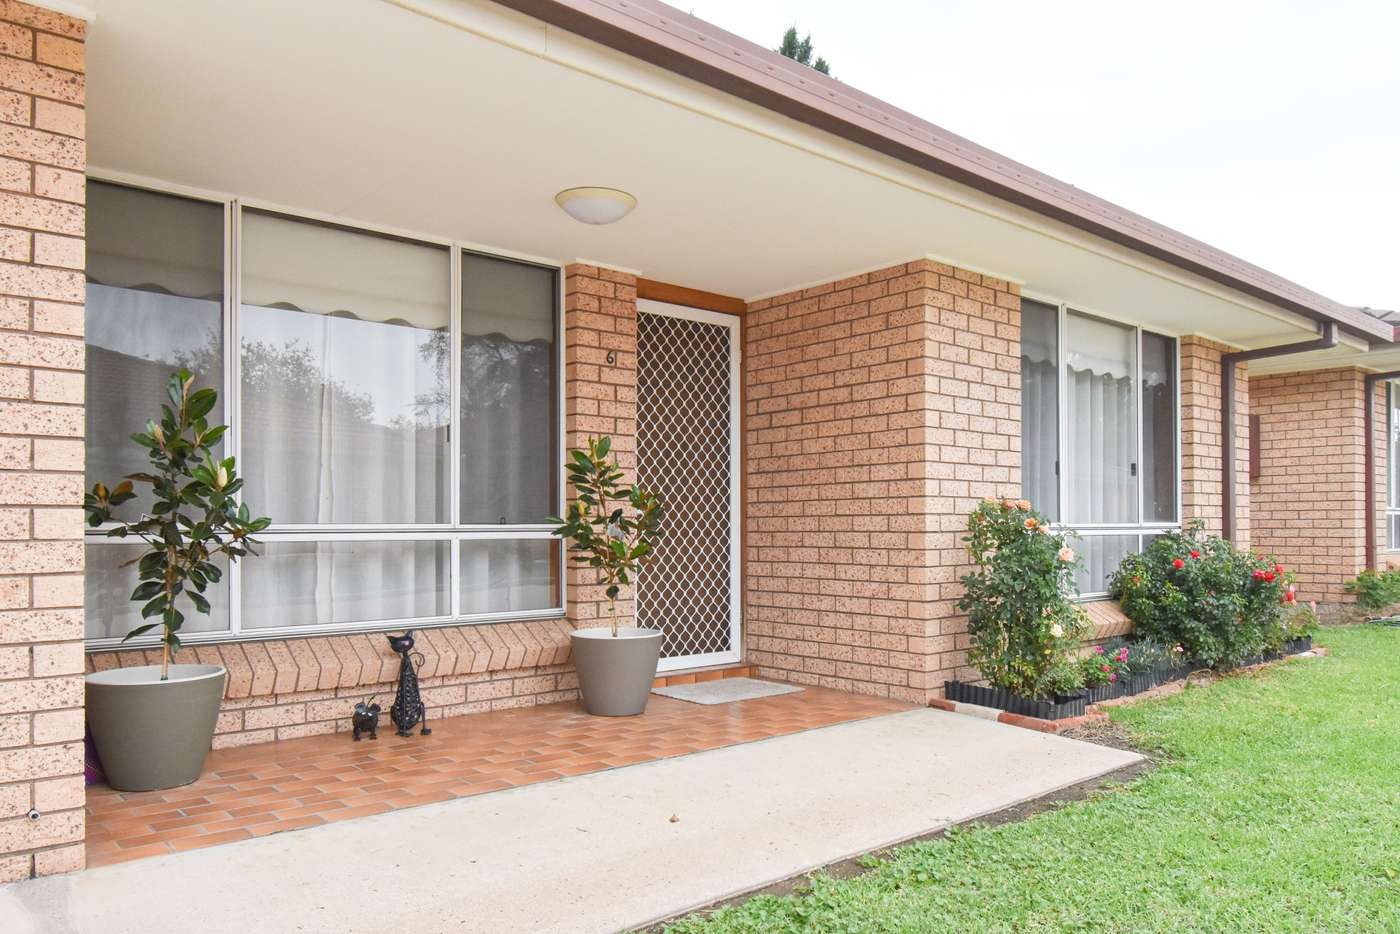 Main view of Homely unit listing, 6/196 Piper Steet, Bathurst NSW 2795